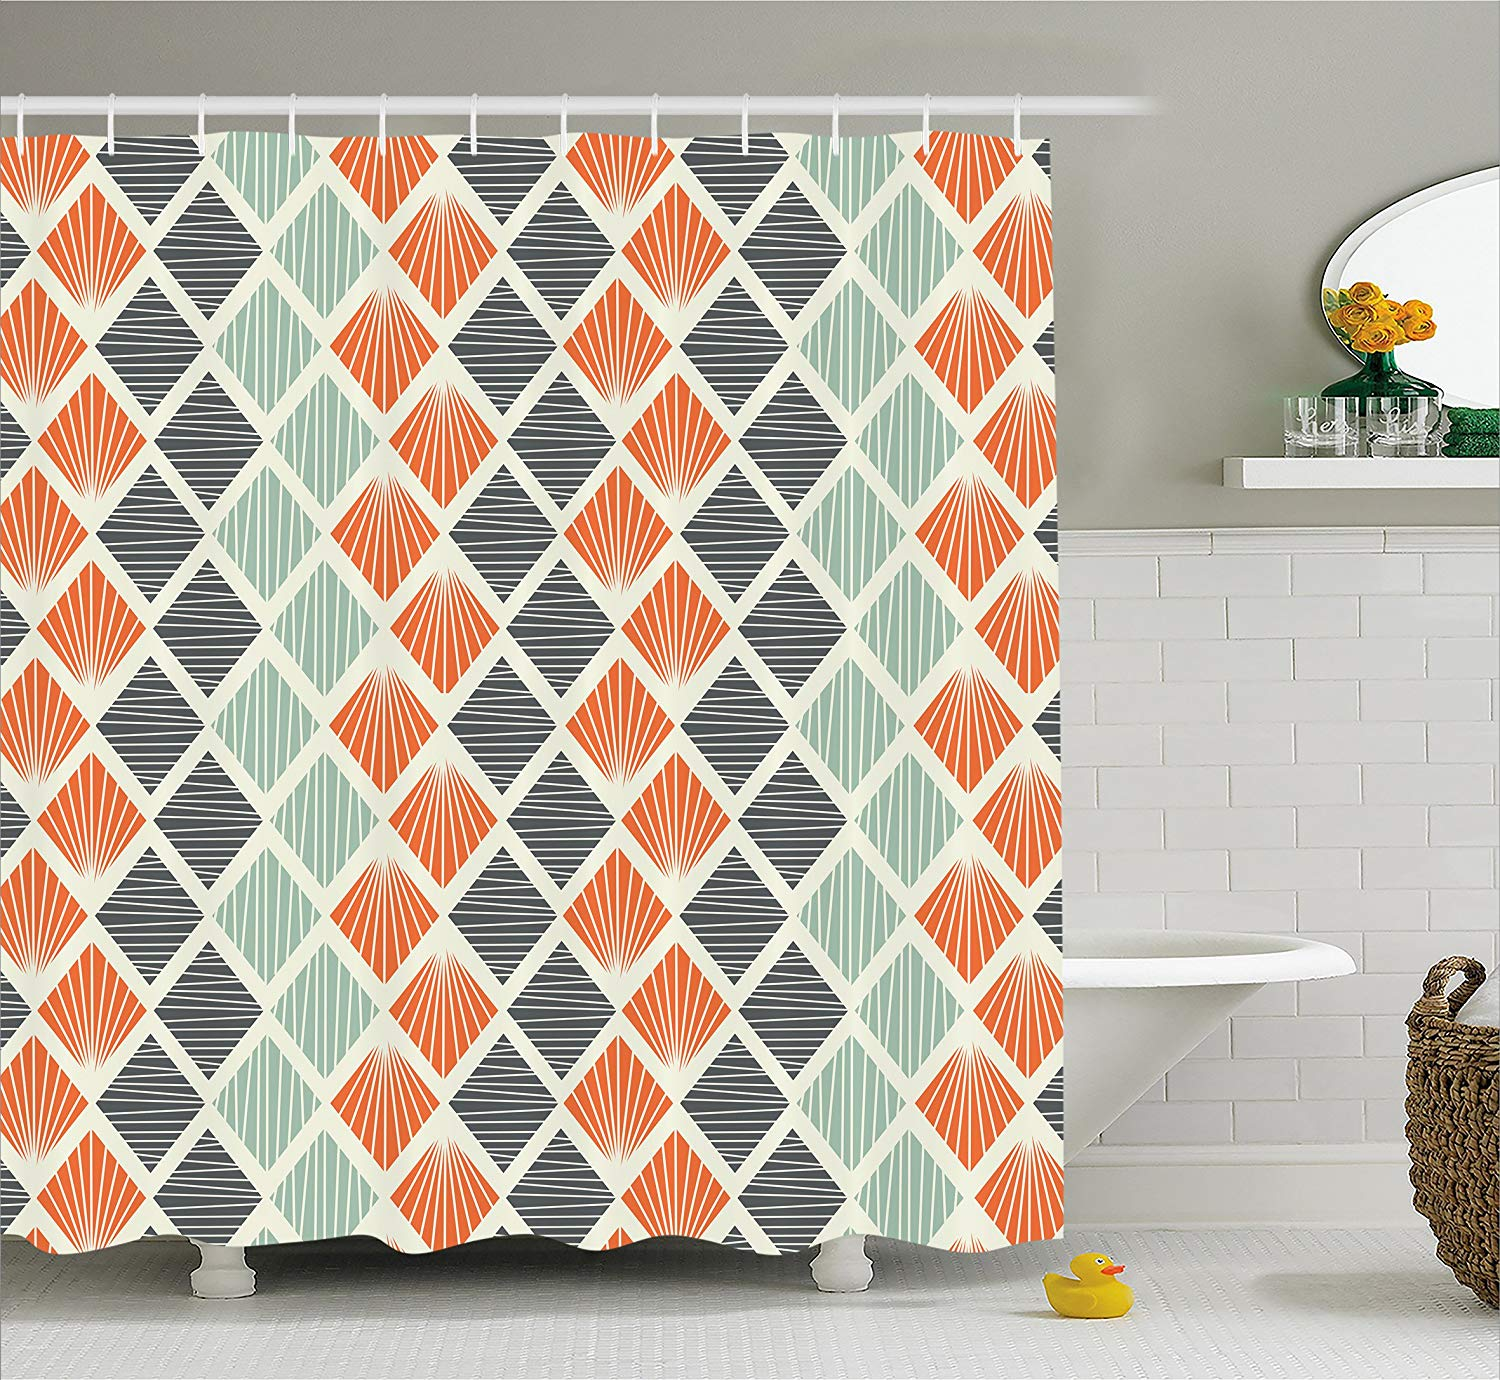 Geometric Decor Shower Curtain by Pop Art Style Retro ...